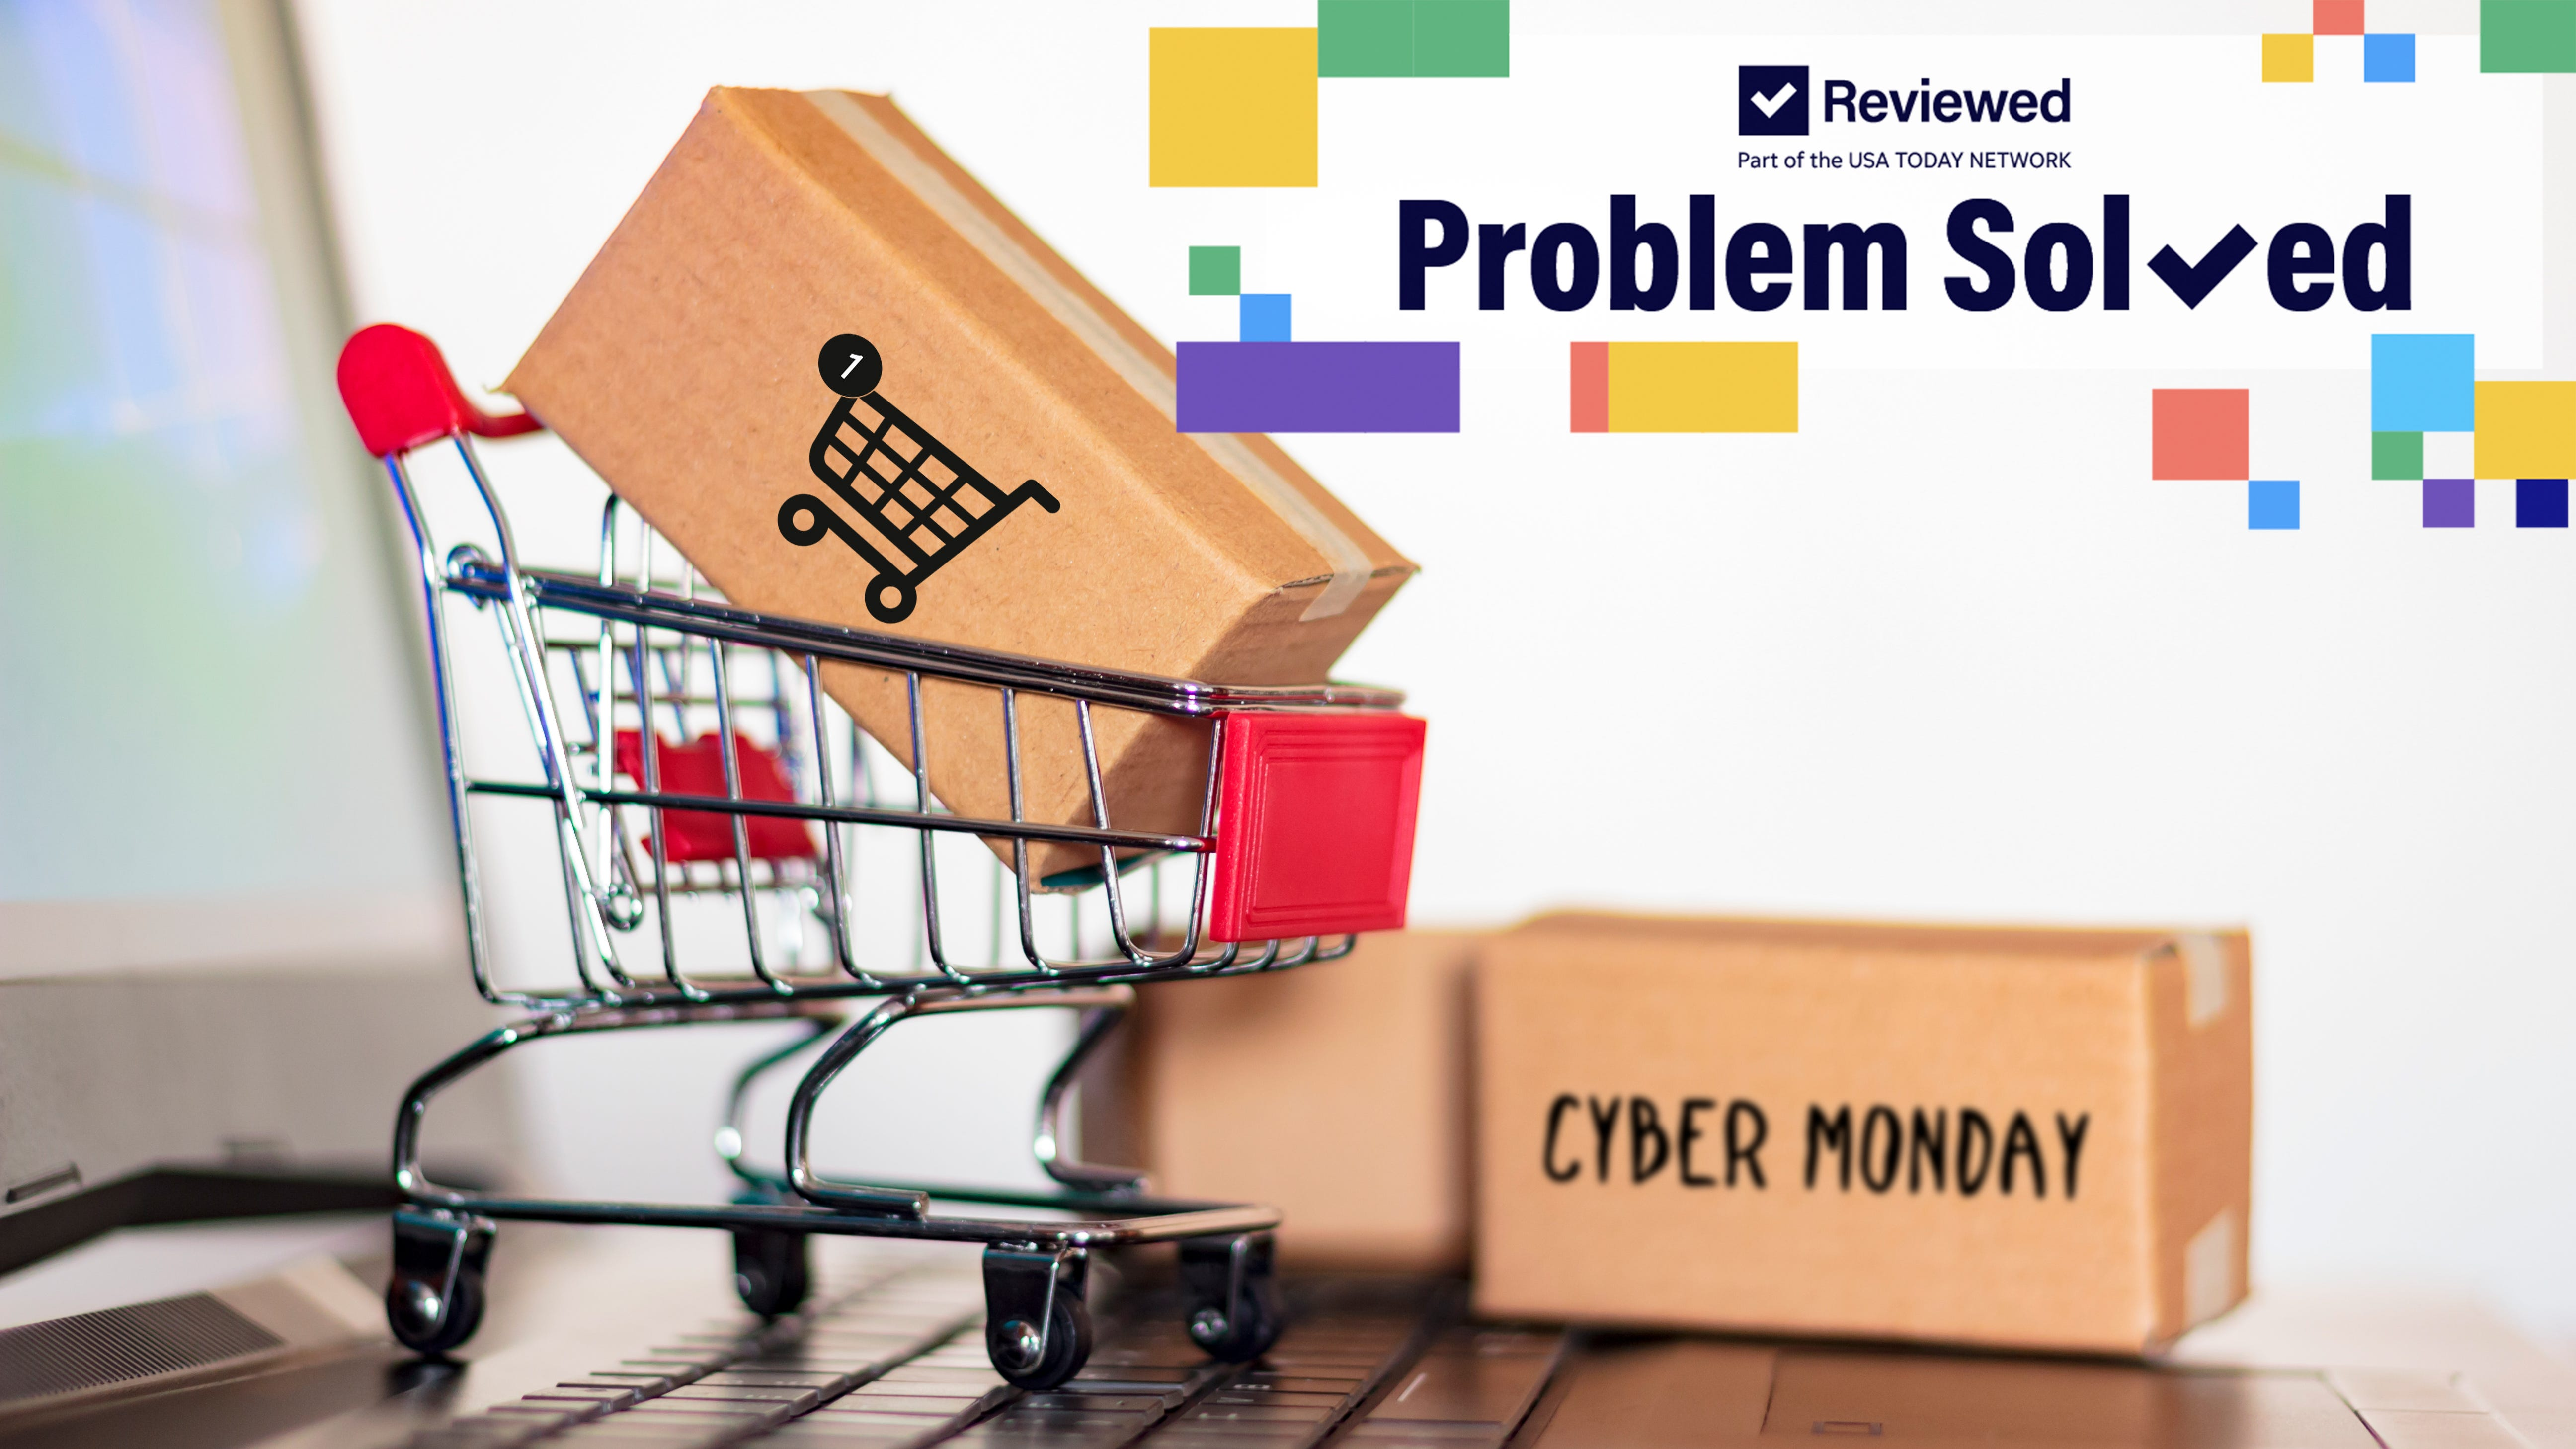 Last minute shopping tips for Cyber Monday